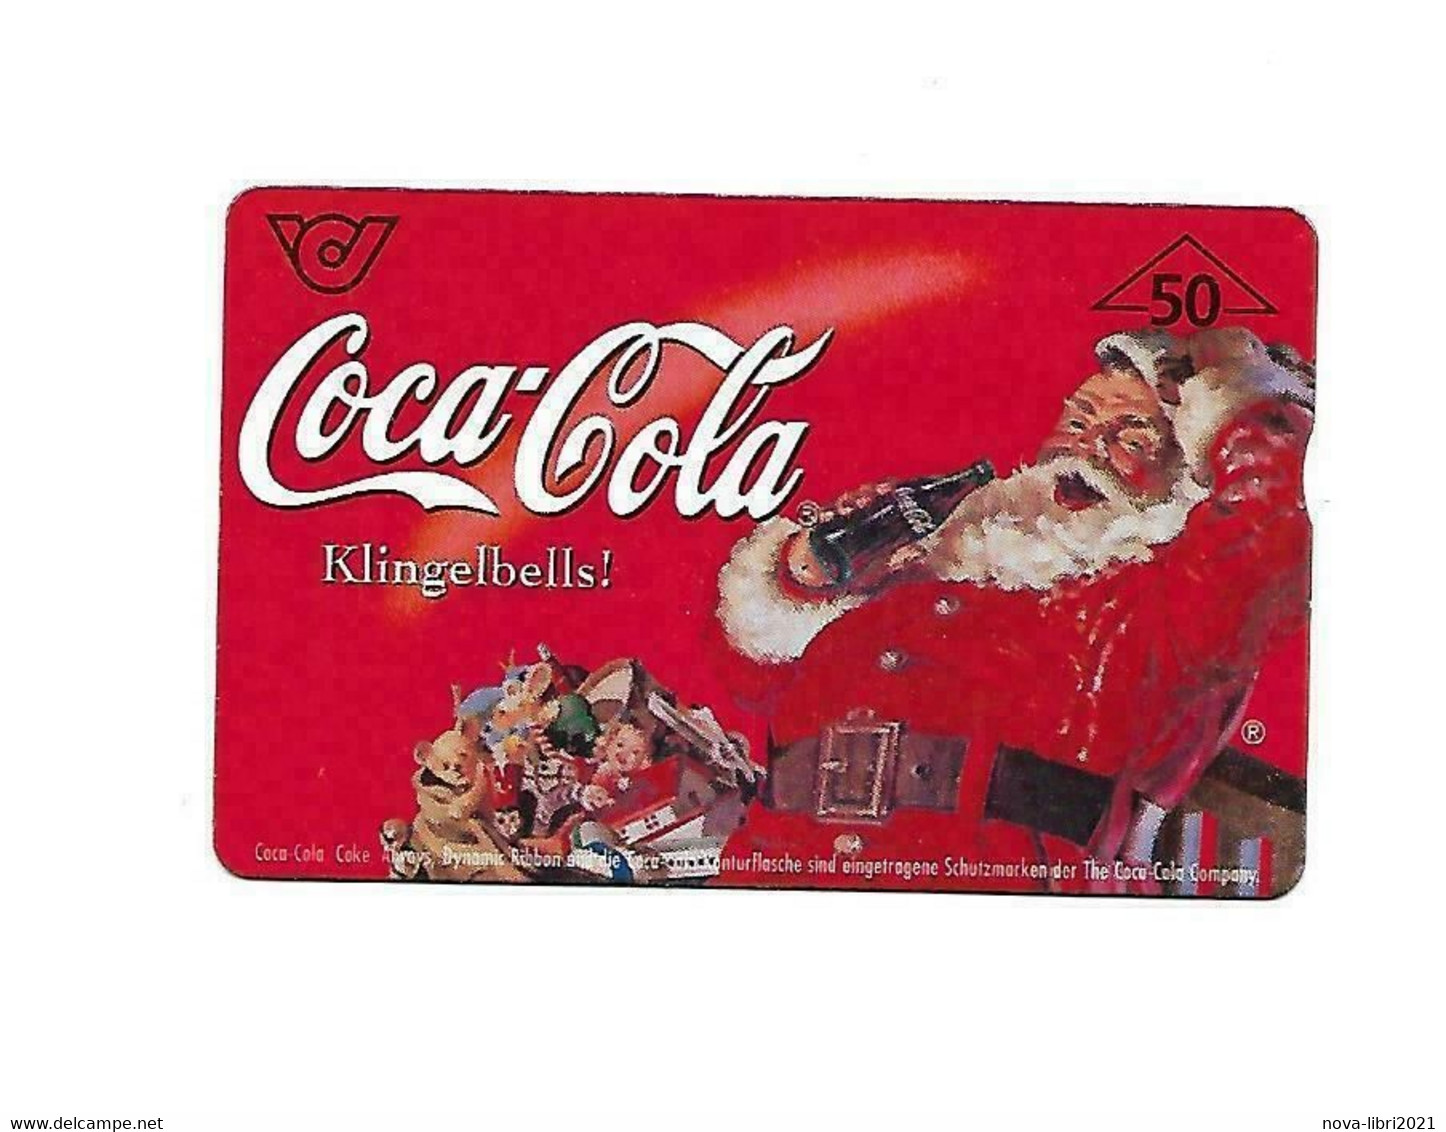 Coca Cola Babbo Natale.Christmas Phone Card Coca Cola Cocacola Babbo Natale Scheda Telefonica Santa Claus Weihnachtsmann